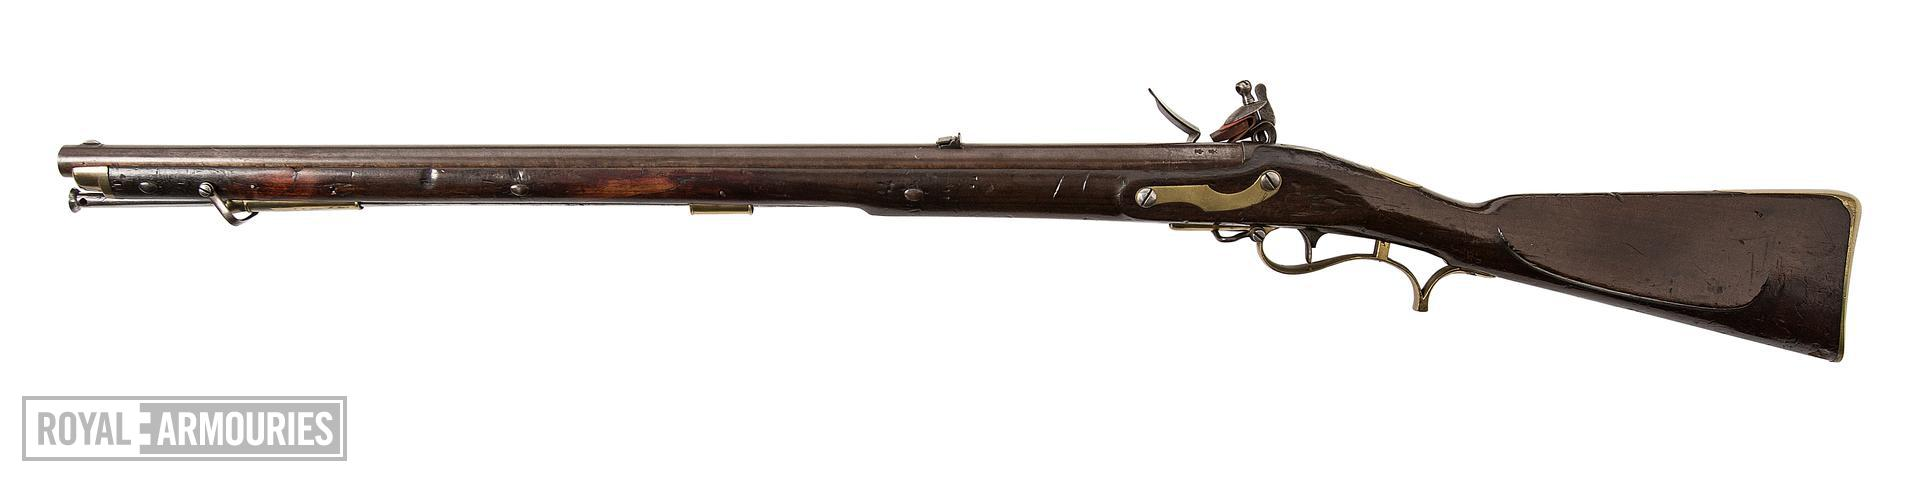 1805 'Baker' muzzle-loading rifle, Britain, about 1812, by I.Gill (XII.3495)